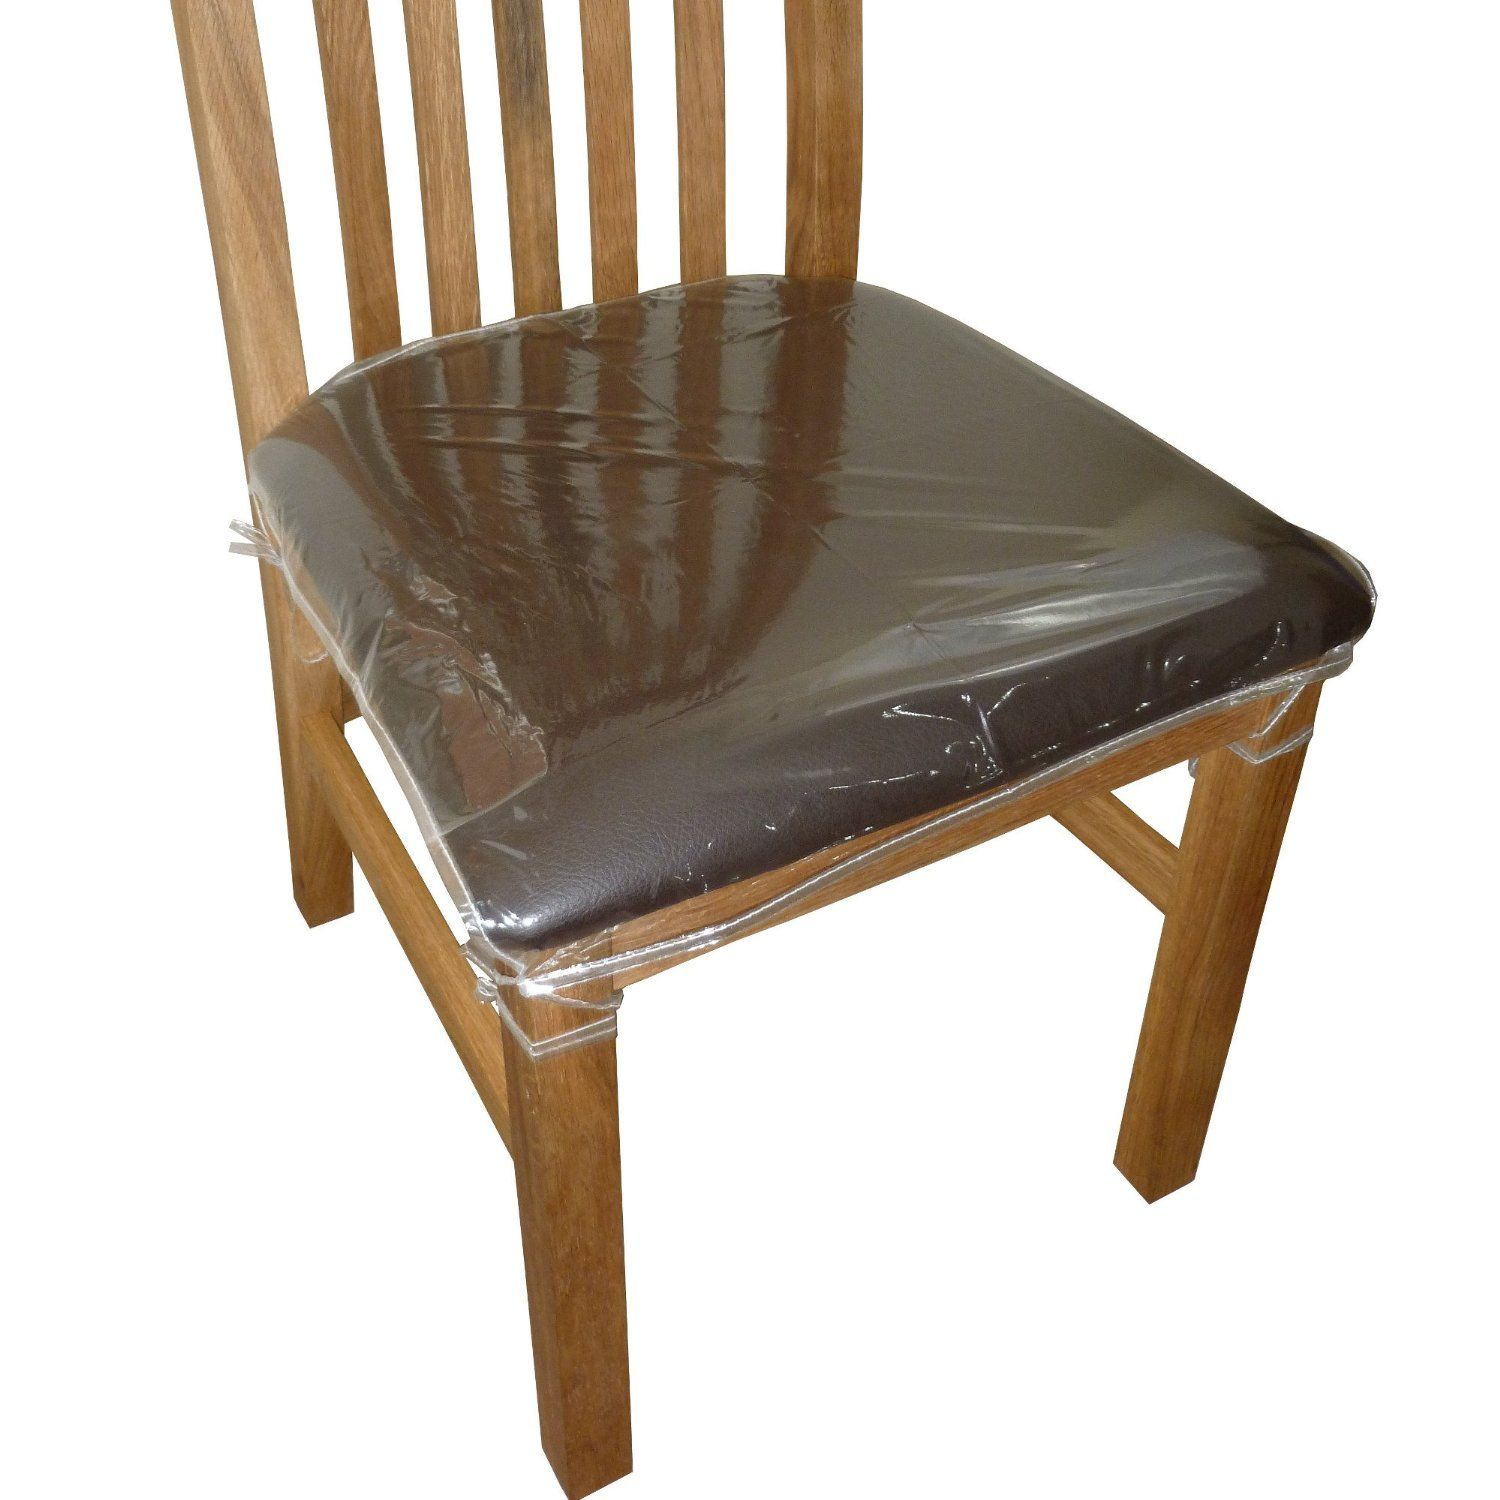 $16/6 Clear Plastic Dining Chair Seat Cushion Covers / Protectors: They Are  Approximately